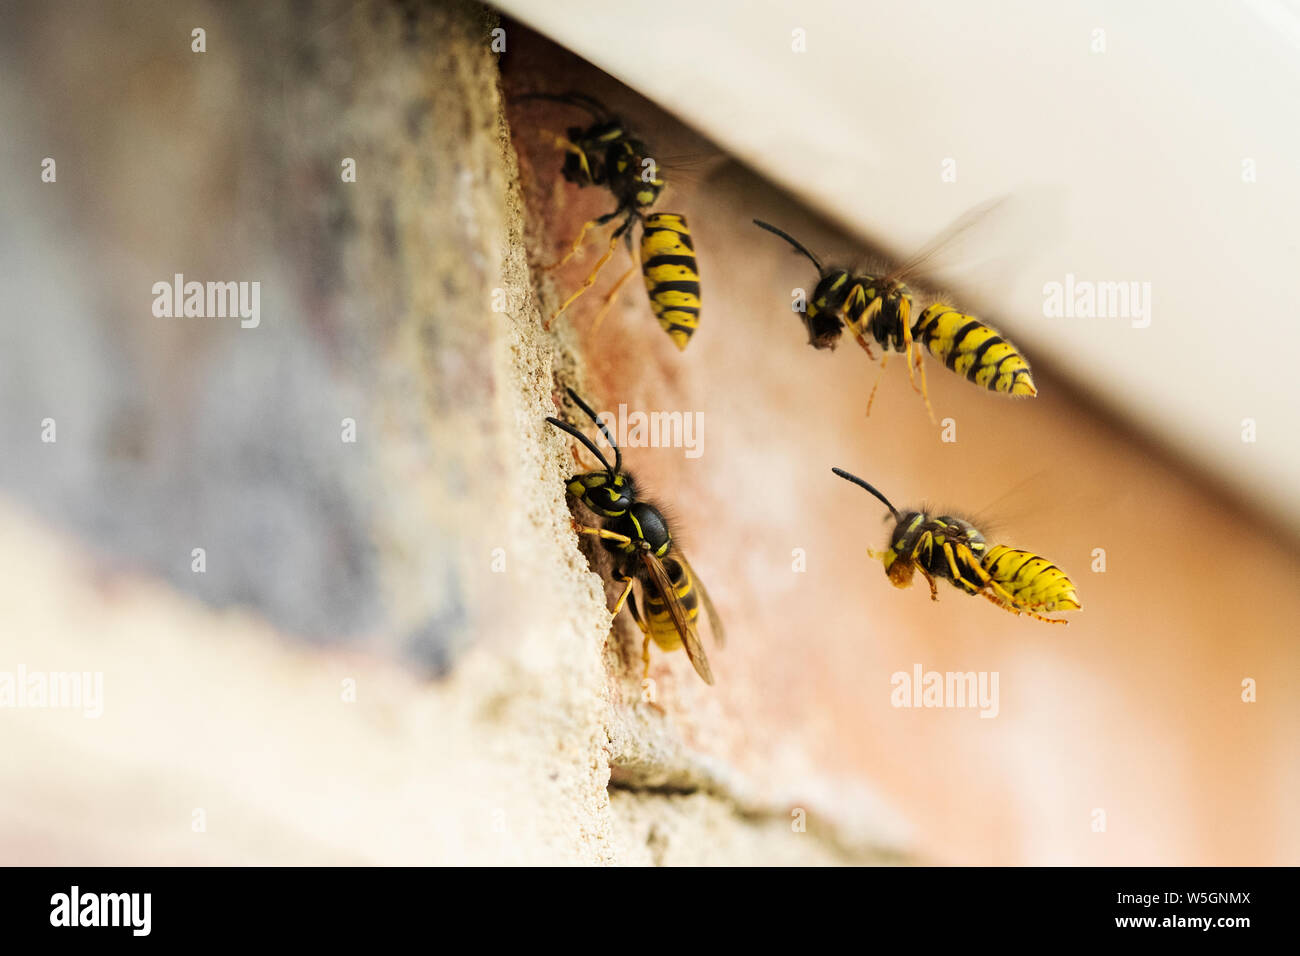 Wasp Nest Under Roof Stockfotos Wasp Nest Under Roof Bilder Alamy